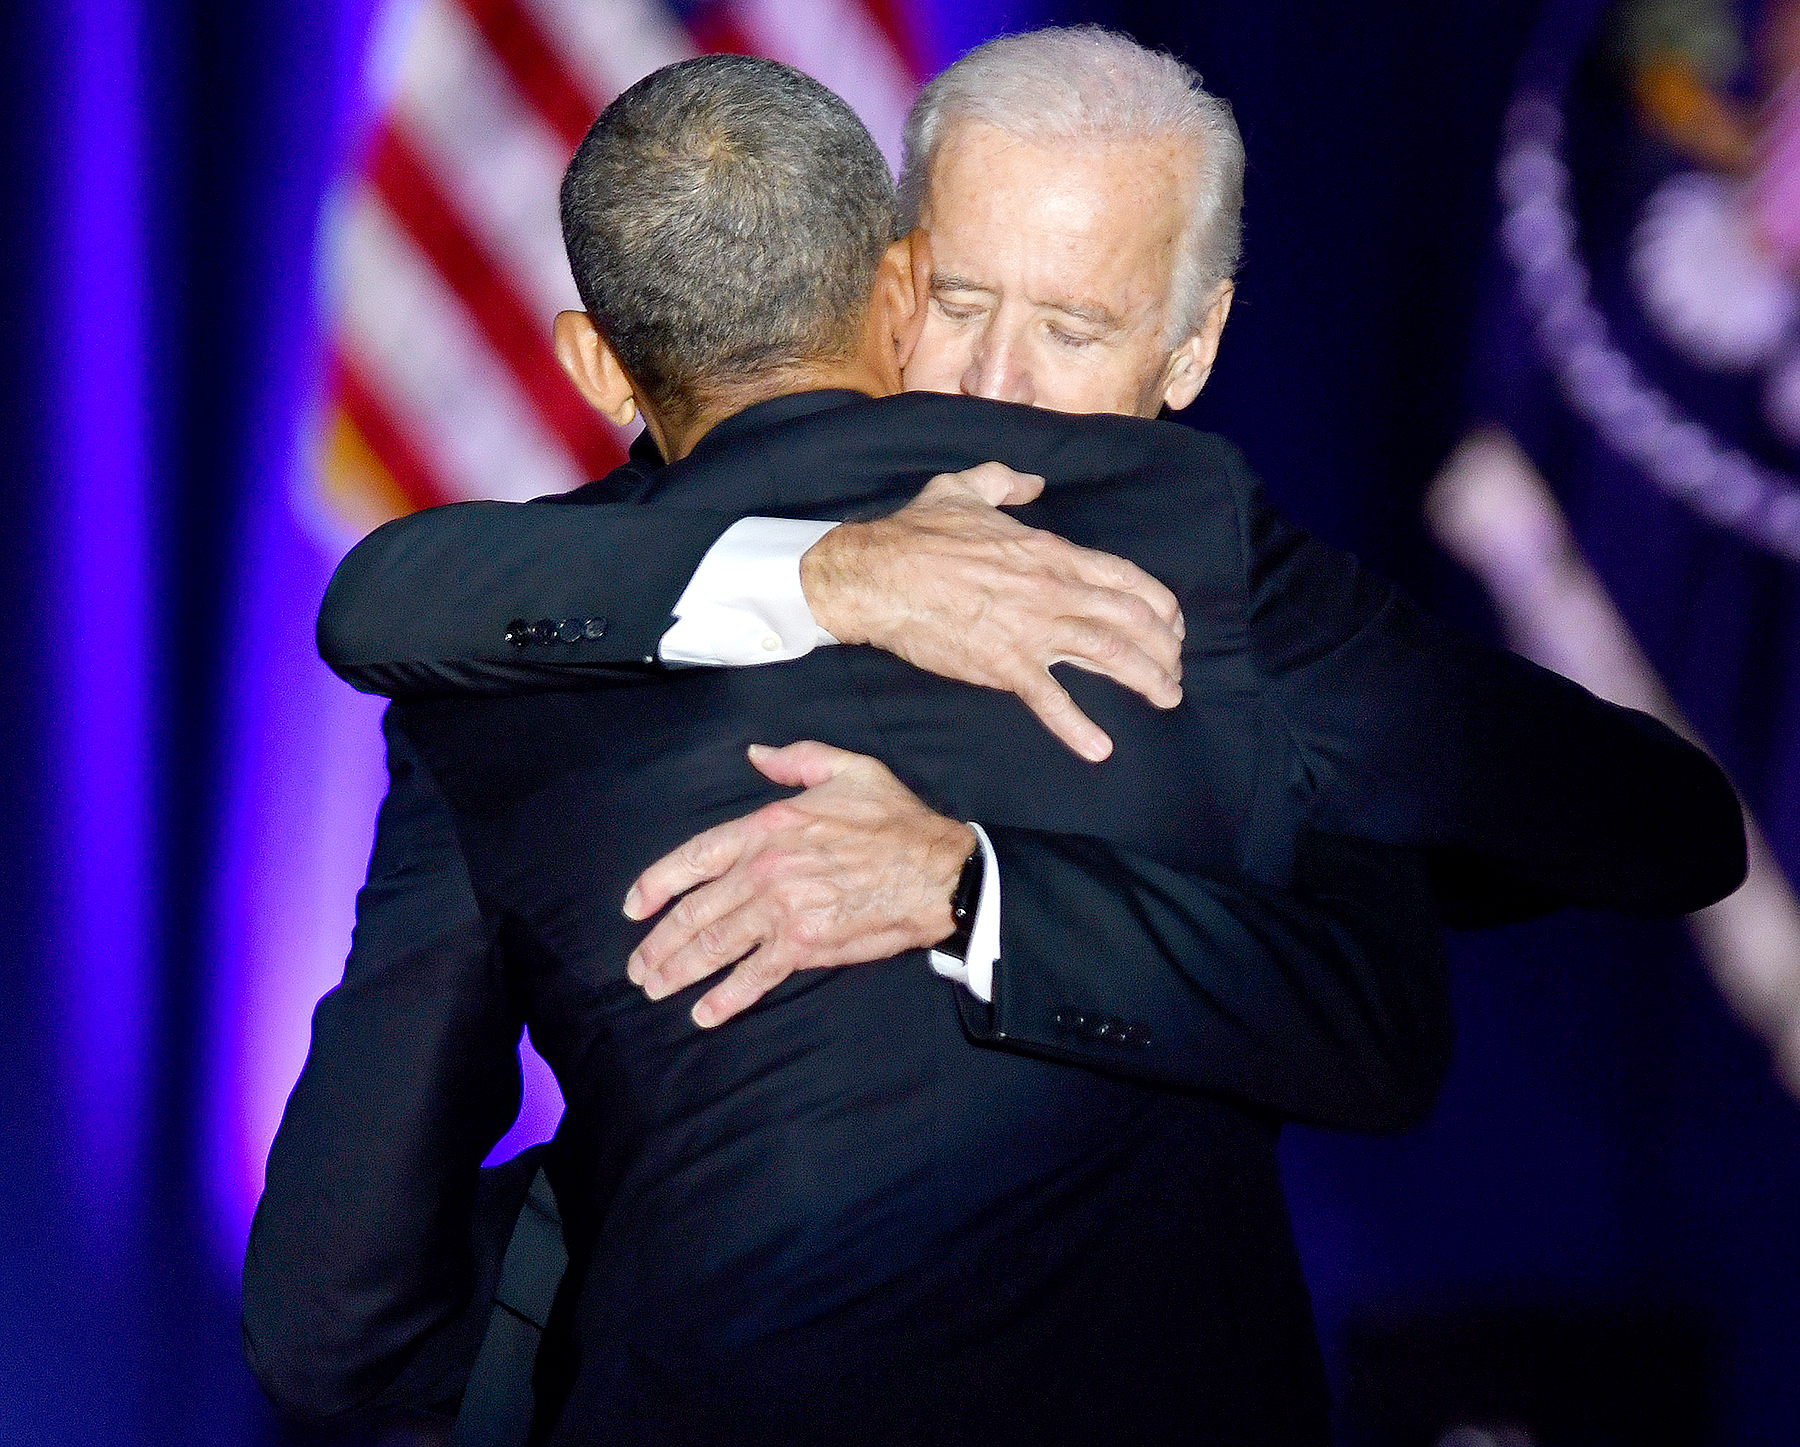 U.S. President Barack Obama, front, embraces U.S. Vice President Joe Biden after his farewell address in Chicago, Illinois, U.S., on Tuesday, Jan. 10, 2017.